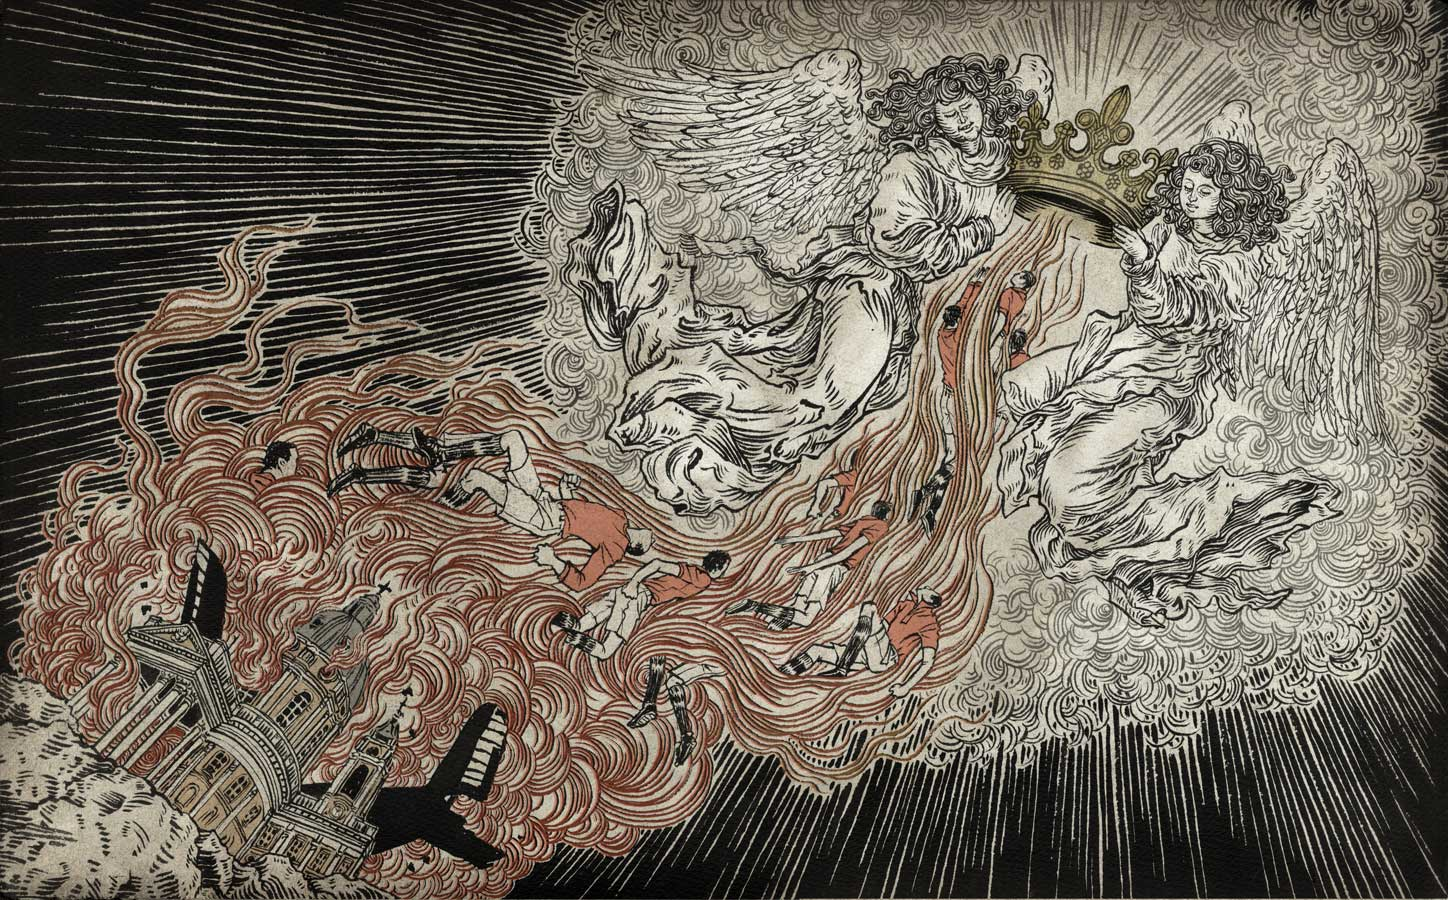 Yuko Shimizu - 8by8 Tragedy of Il Grande Torino -